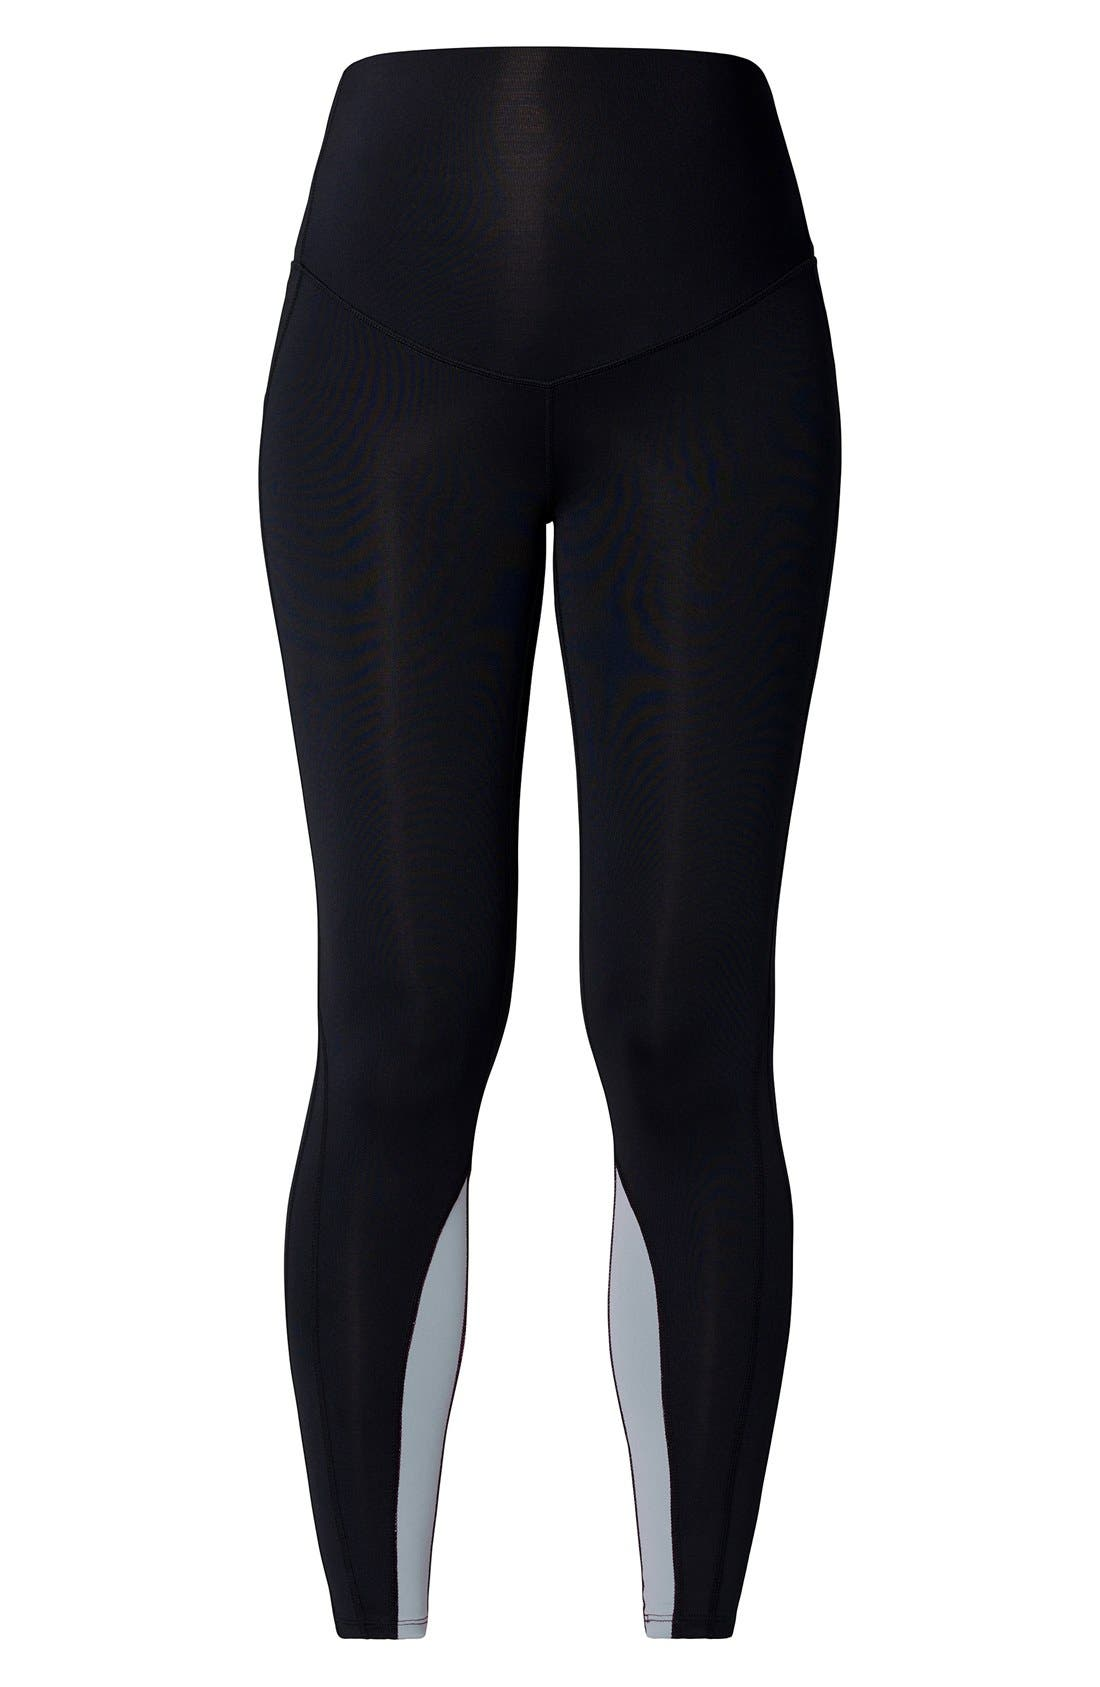 Over the Belly Maternity Sport Leggings,                             Main thumbnail 1, color,                             BLACK